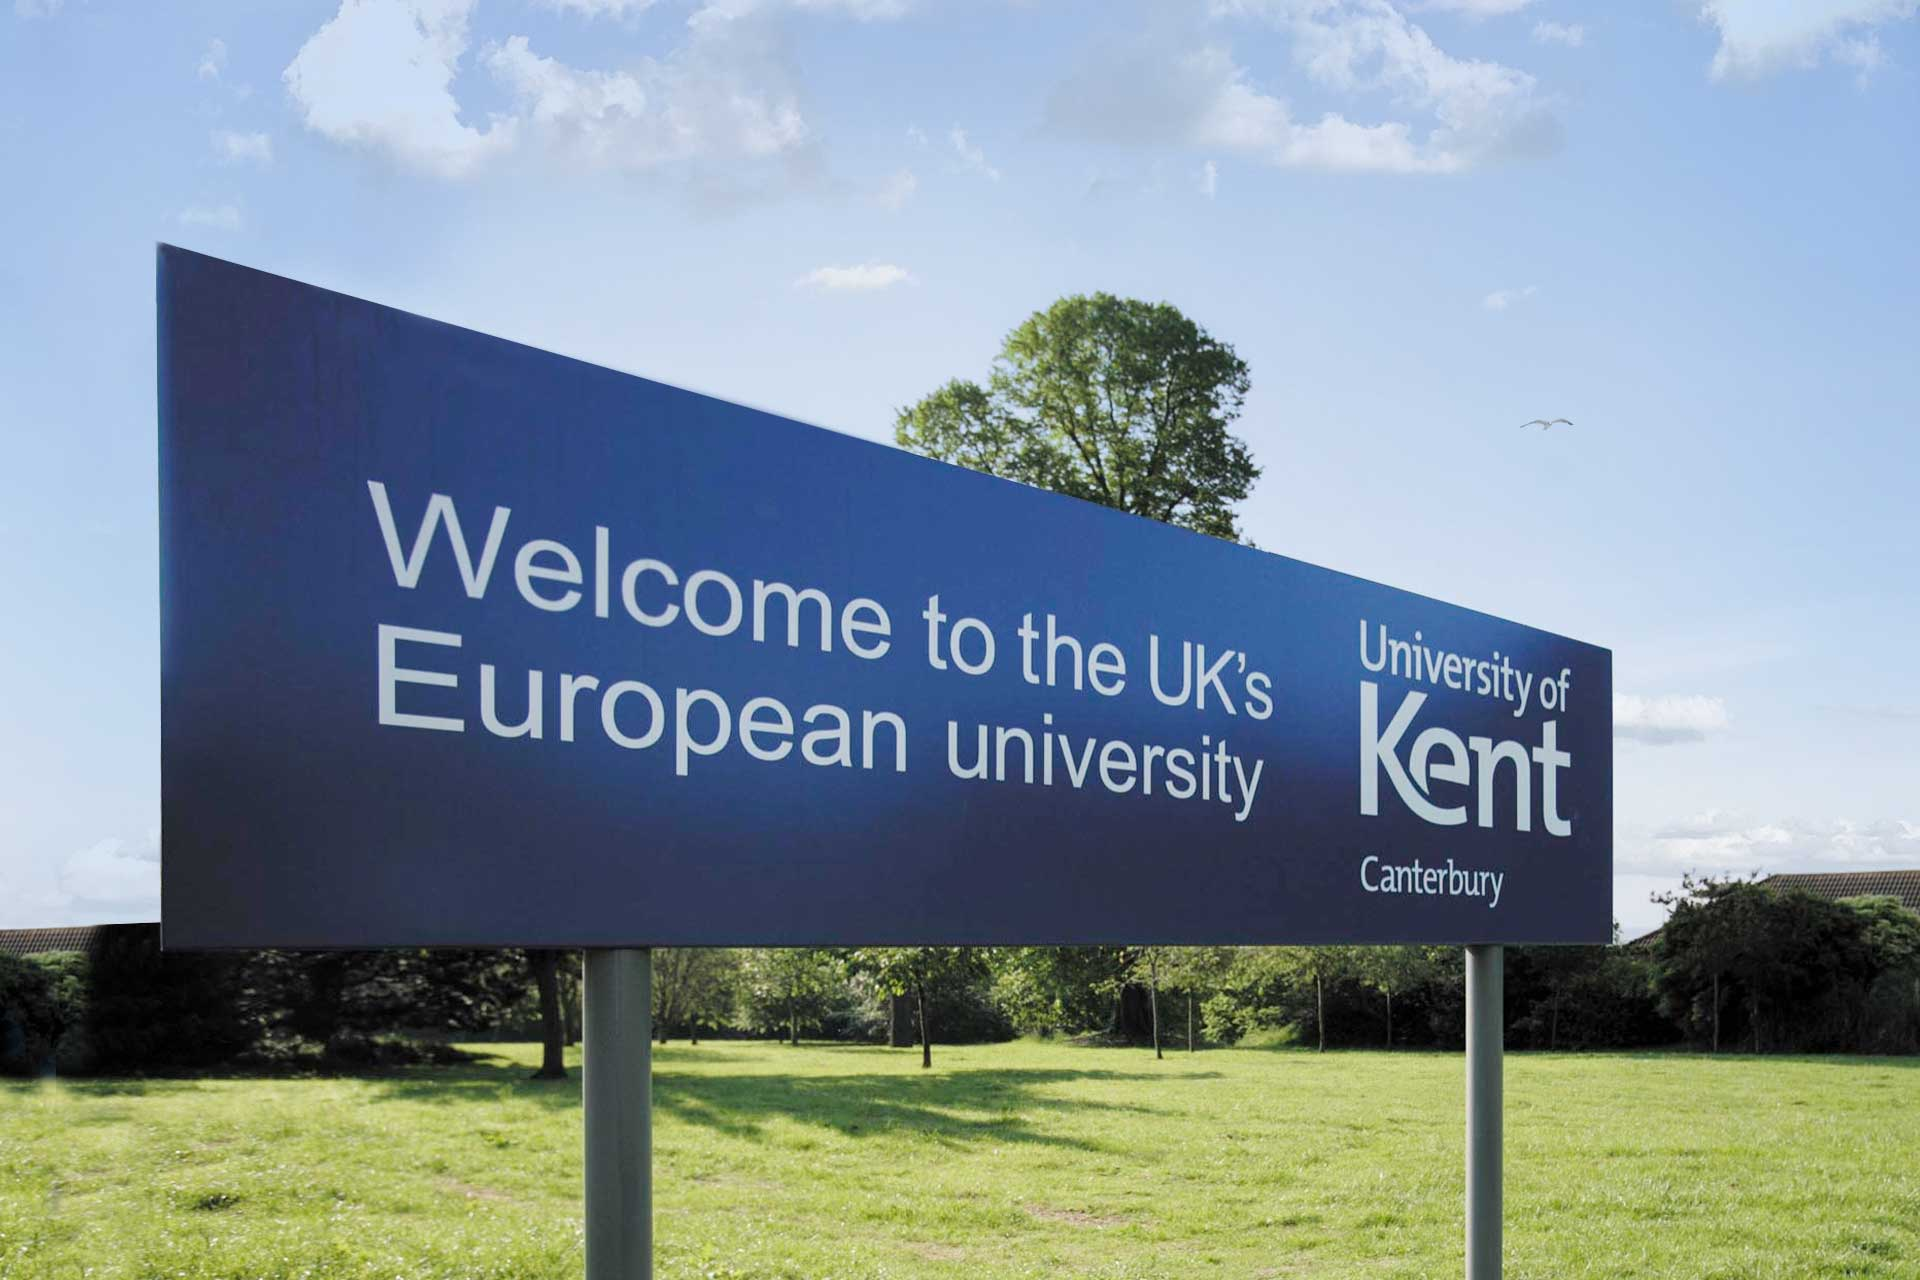 University of Kent sign